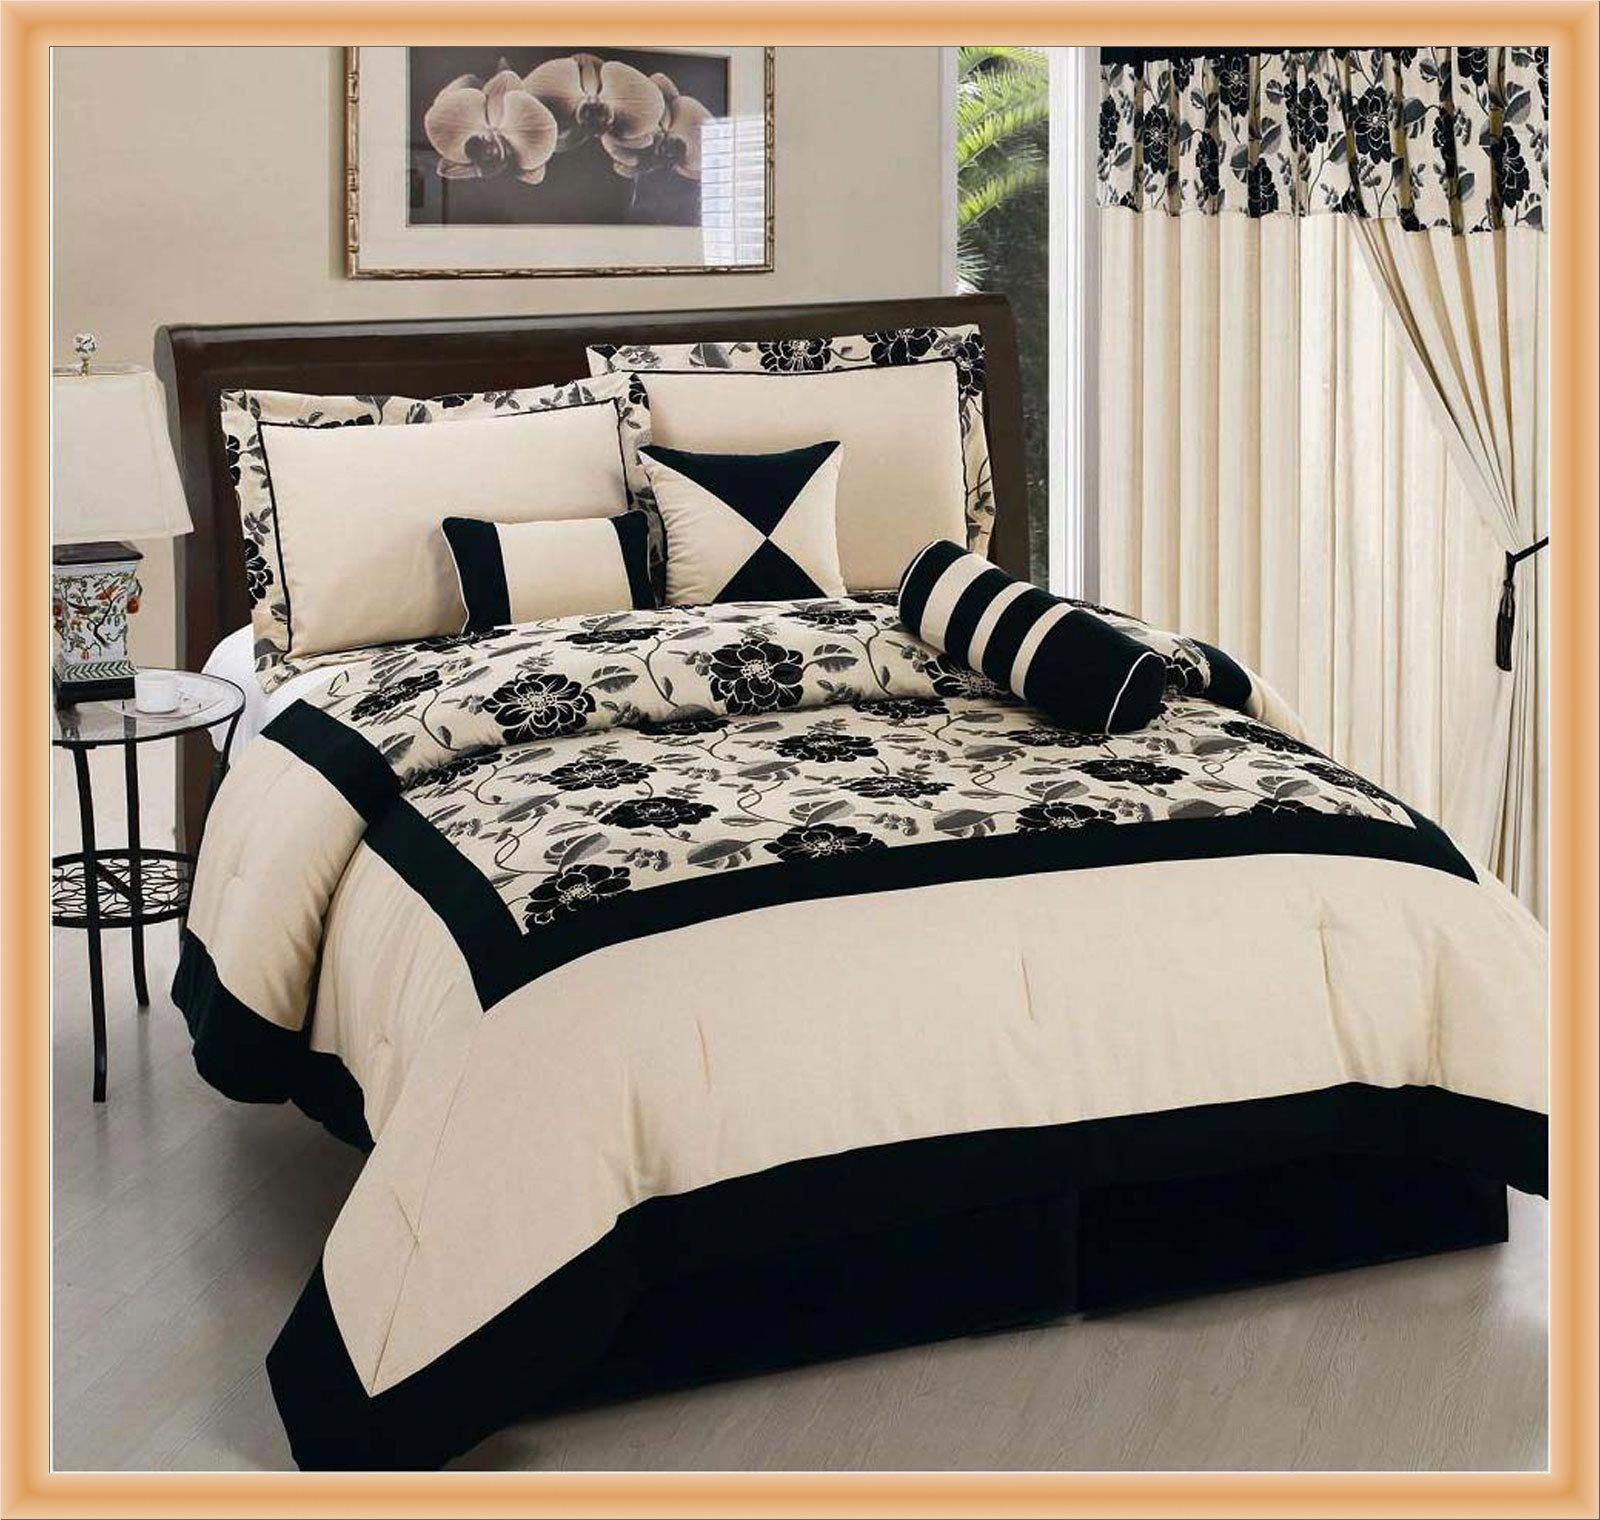 Black And Cream Duvet Sets 14 Fascinating Black And Cream Bedding Photograph Design